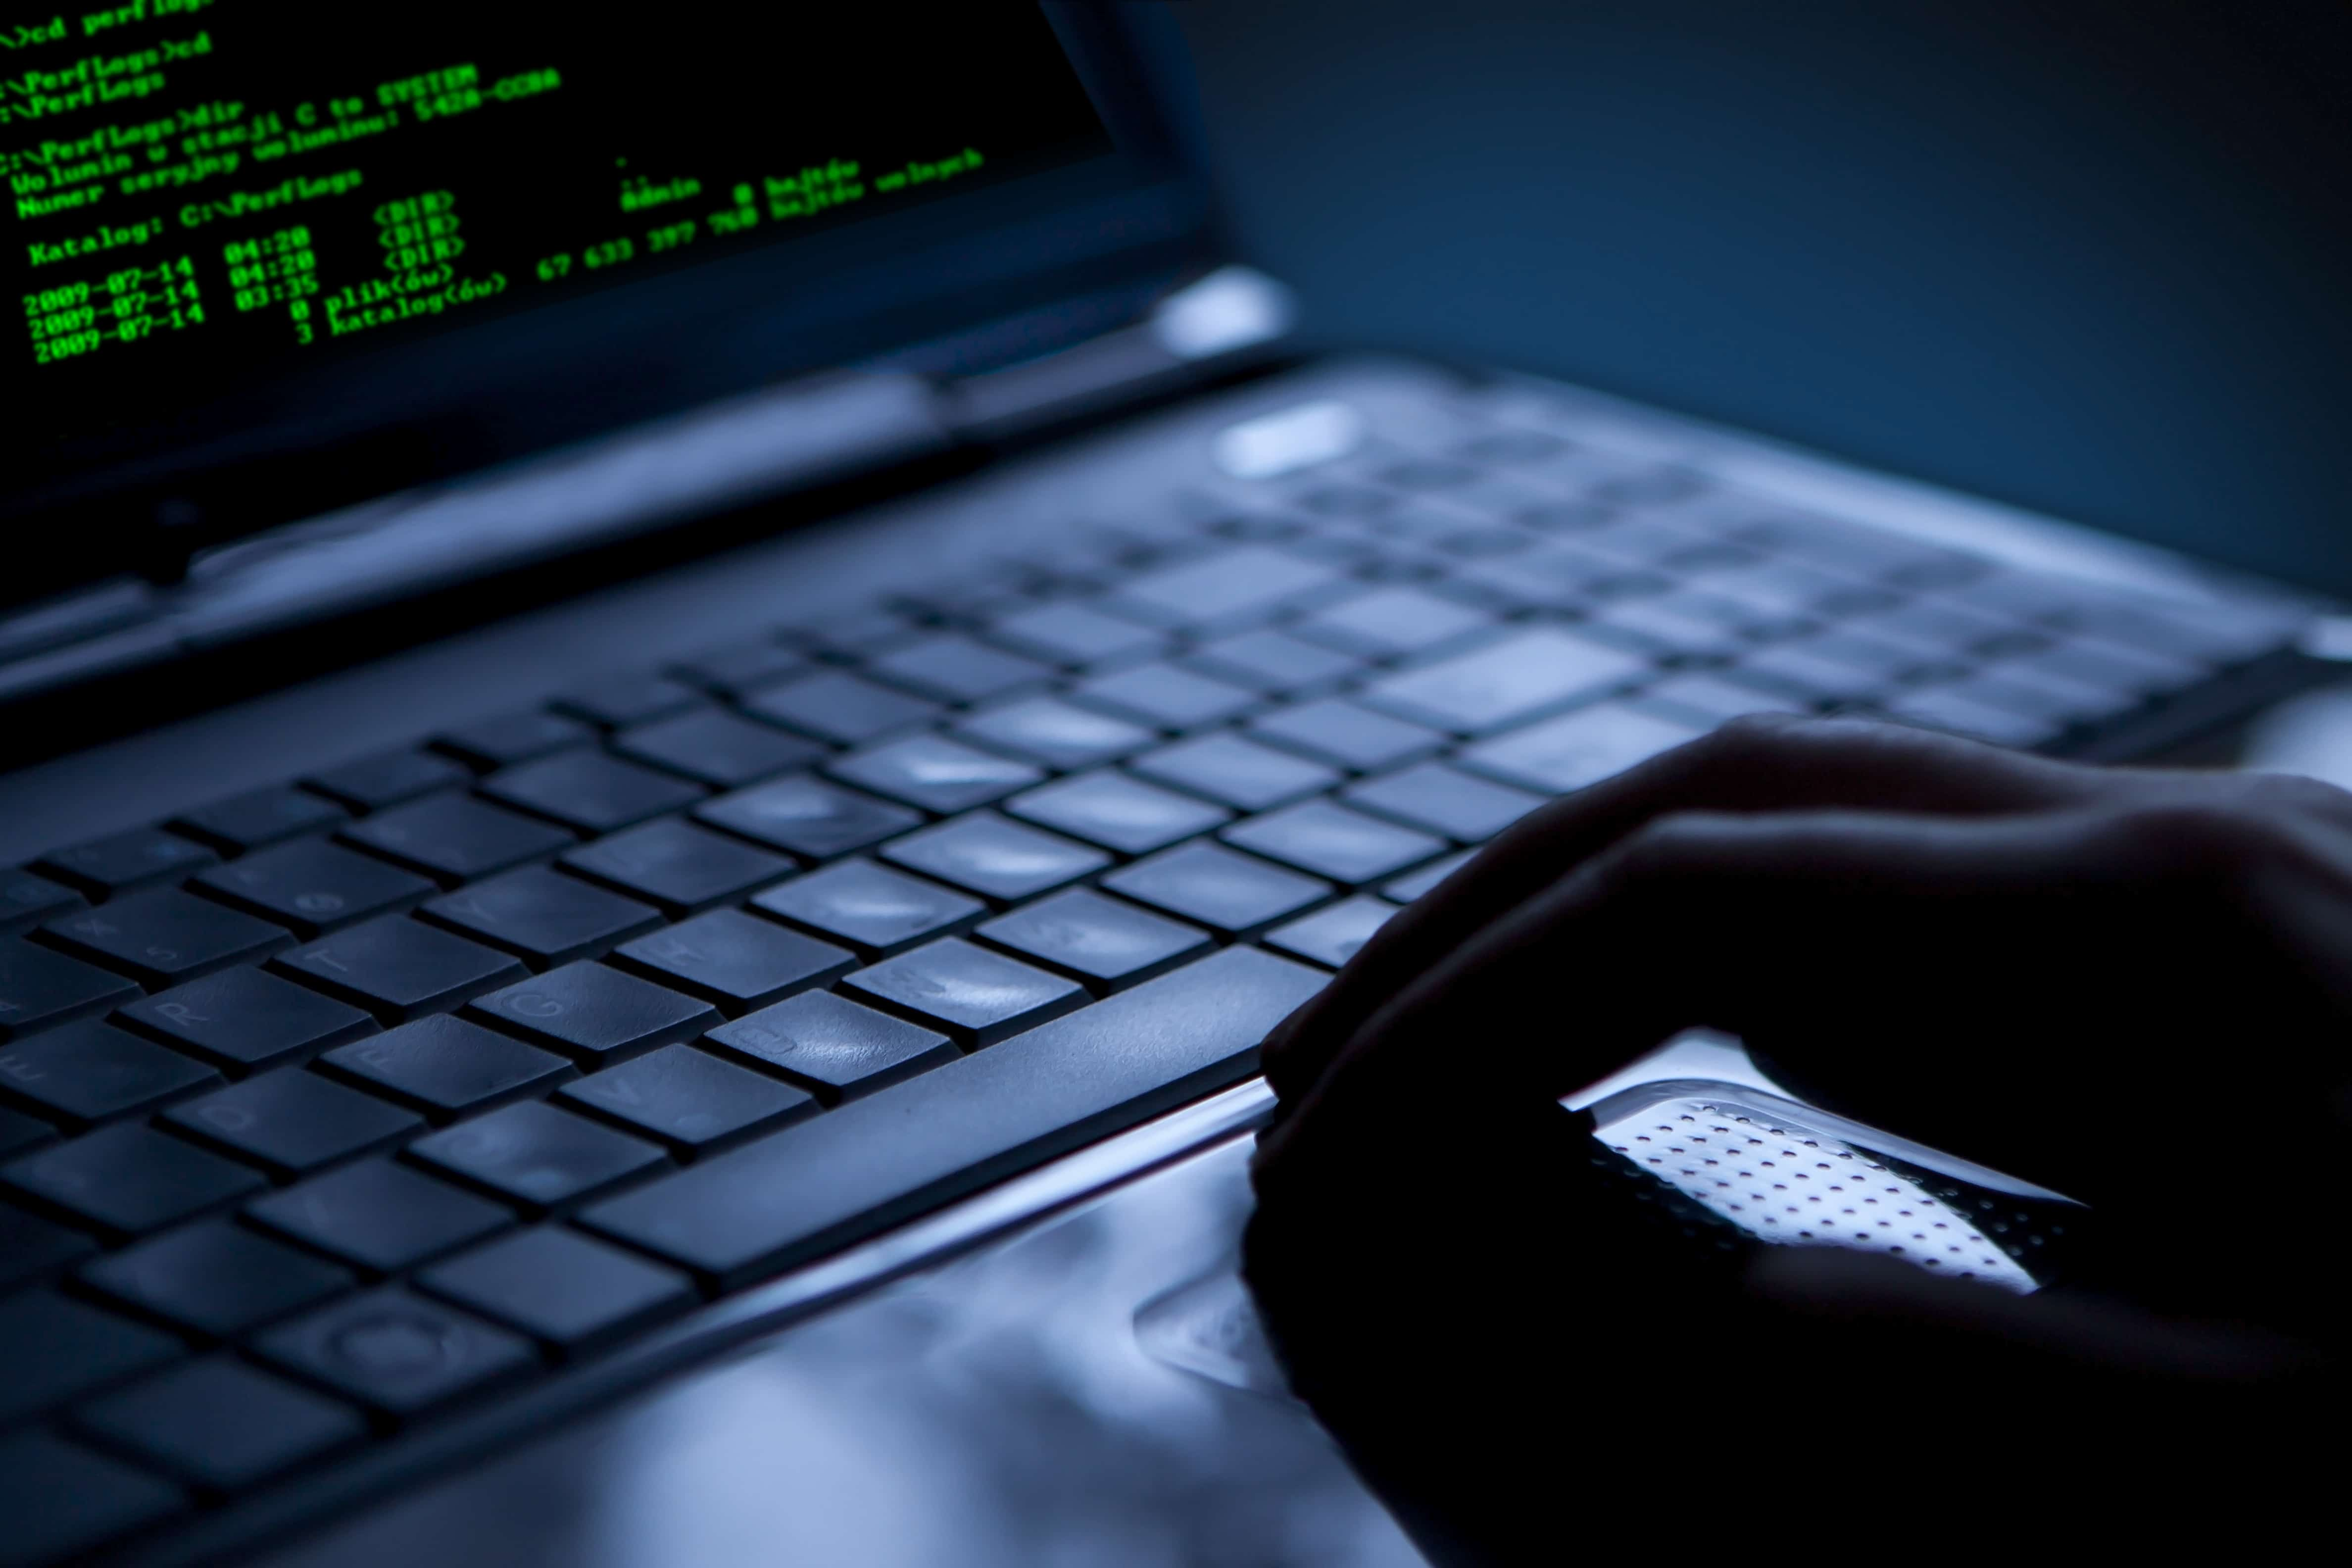 Why Hackers Target Small Businesses small business hackers